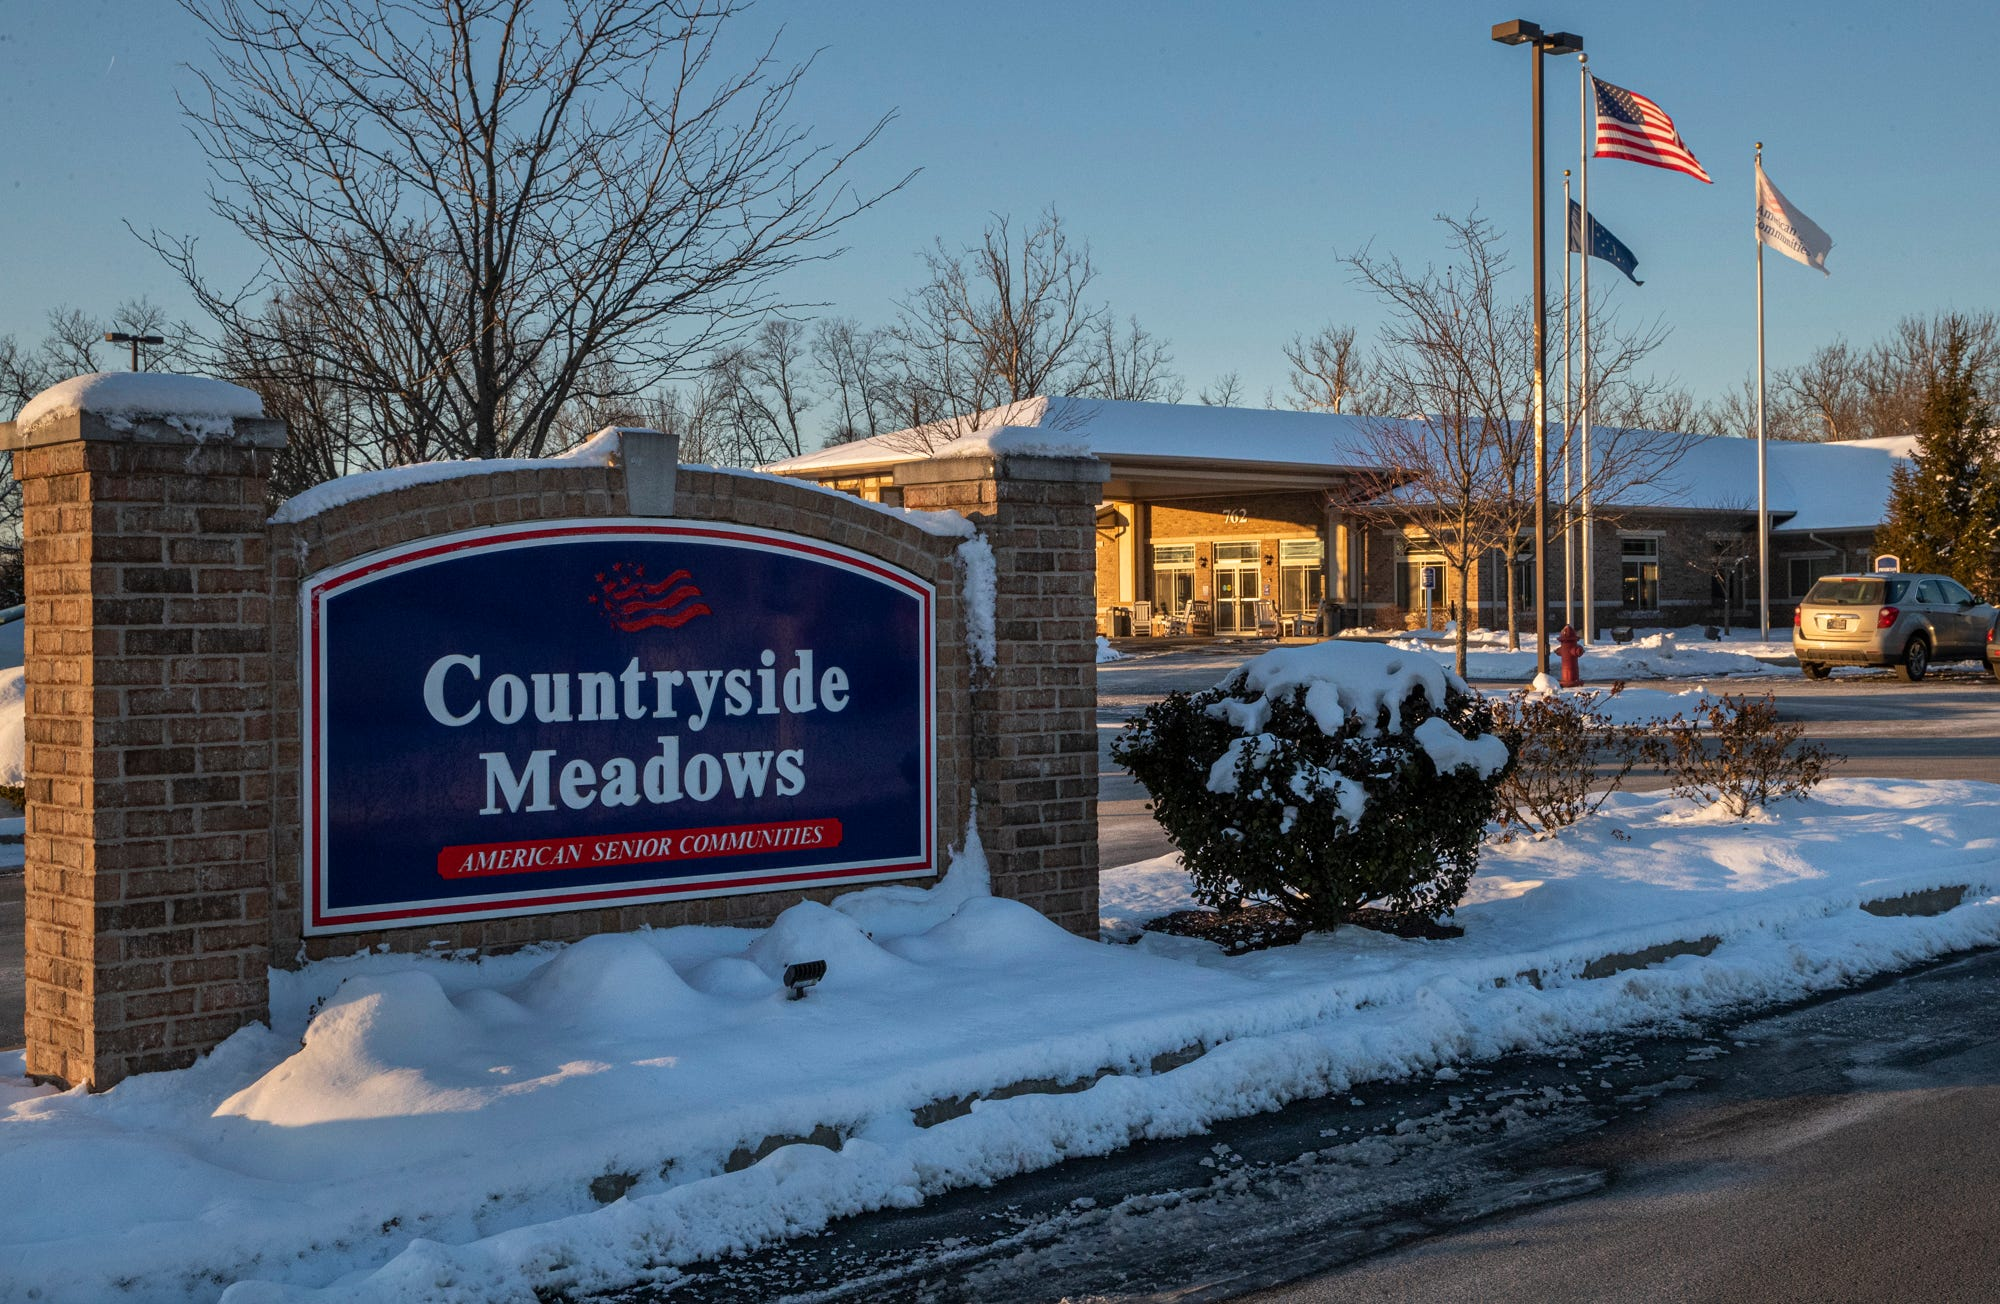 Countryside Meadows in Avon generates more supplemental Medicaid nursing home funds than any other facility in the state. But the home owned by Health & Hospital Corp. of Marion County ranks in the bottom quarter of nursing homes nationally for total nursing staff, according to an IndyStar analysis of federal data.